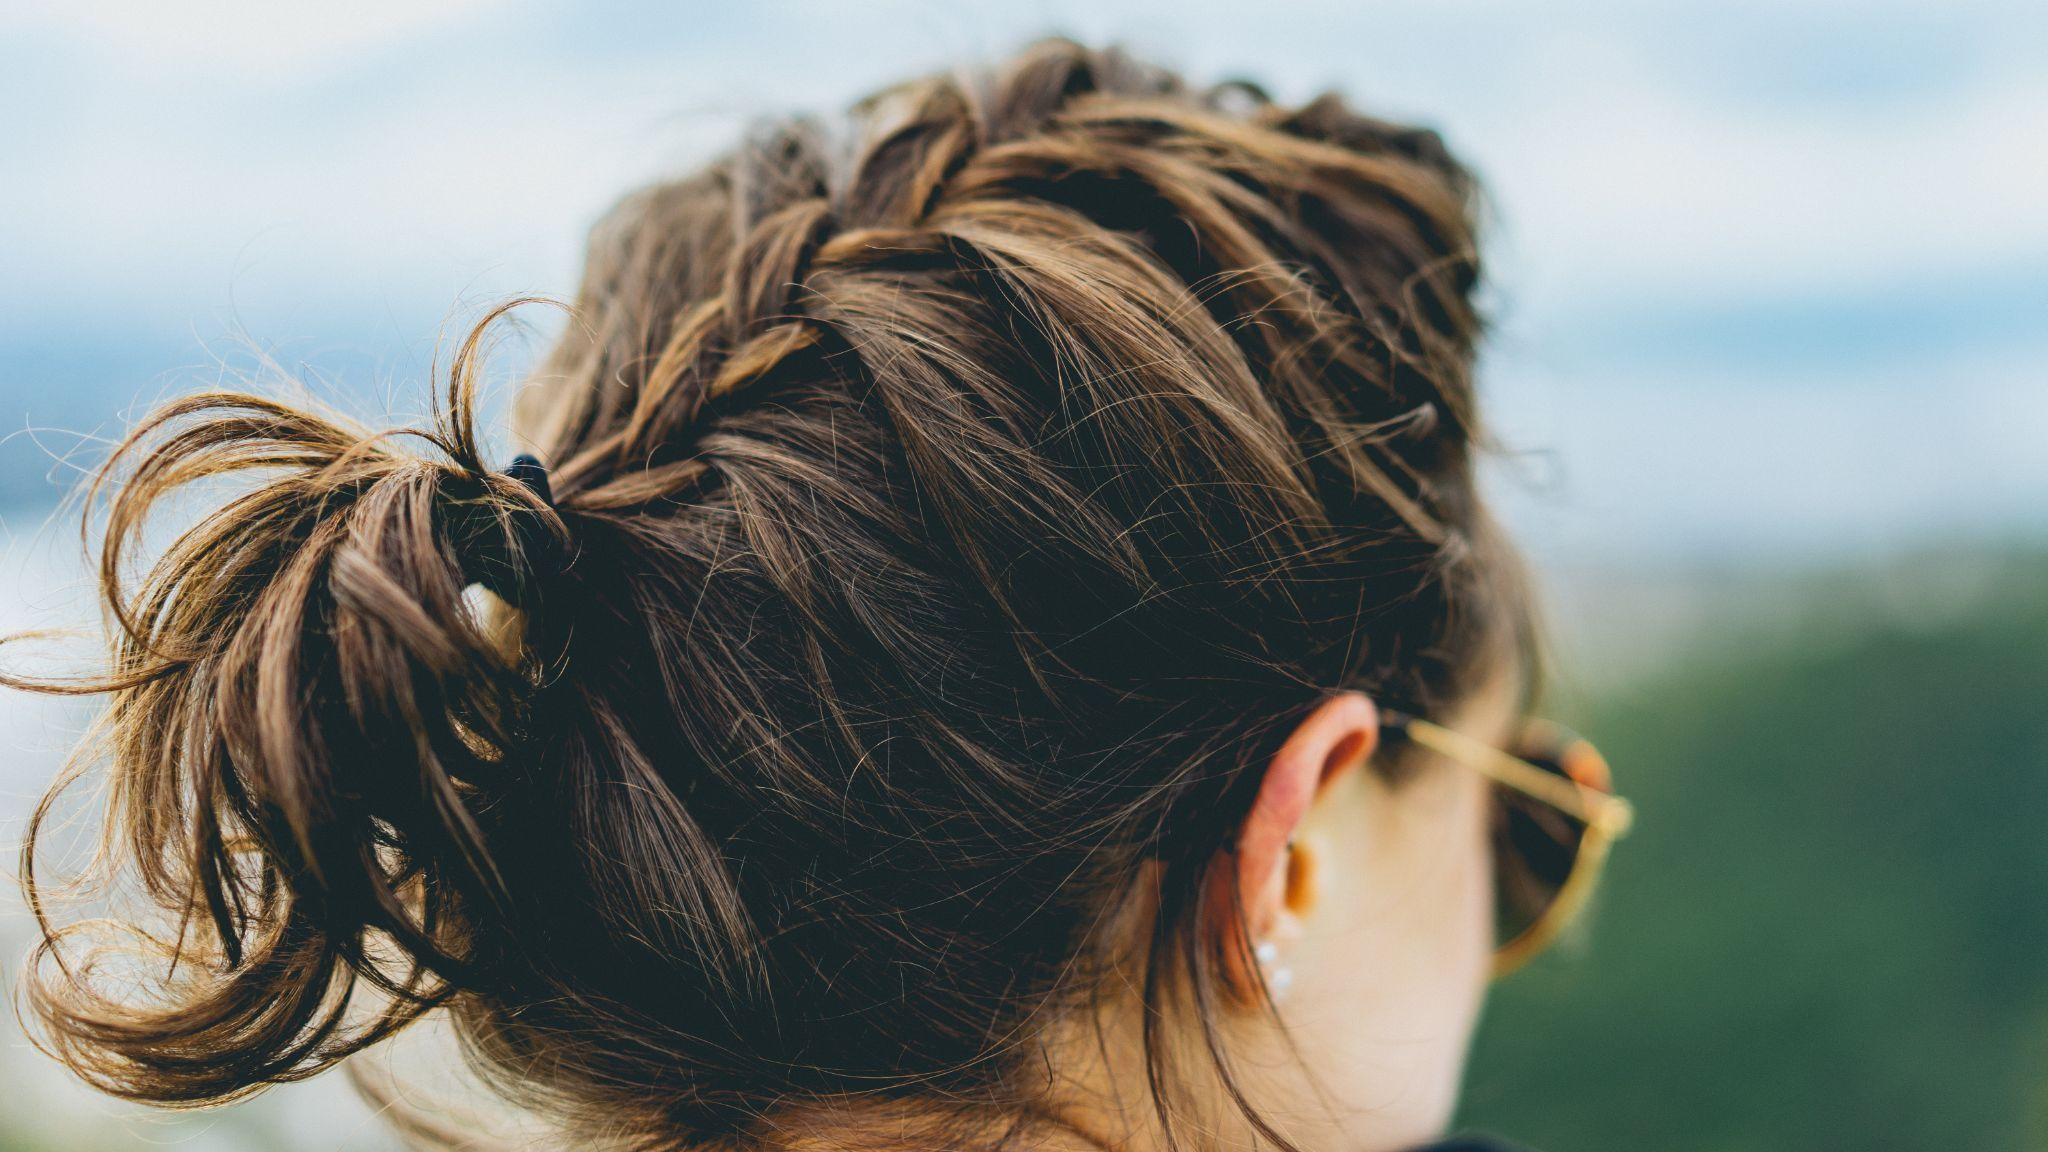 hairstyles that can resist humidity and heat